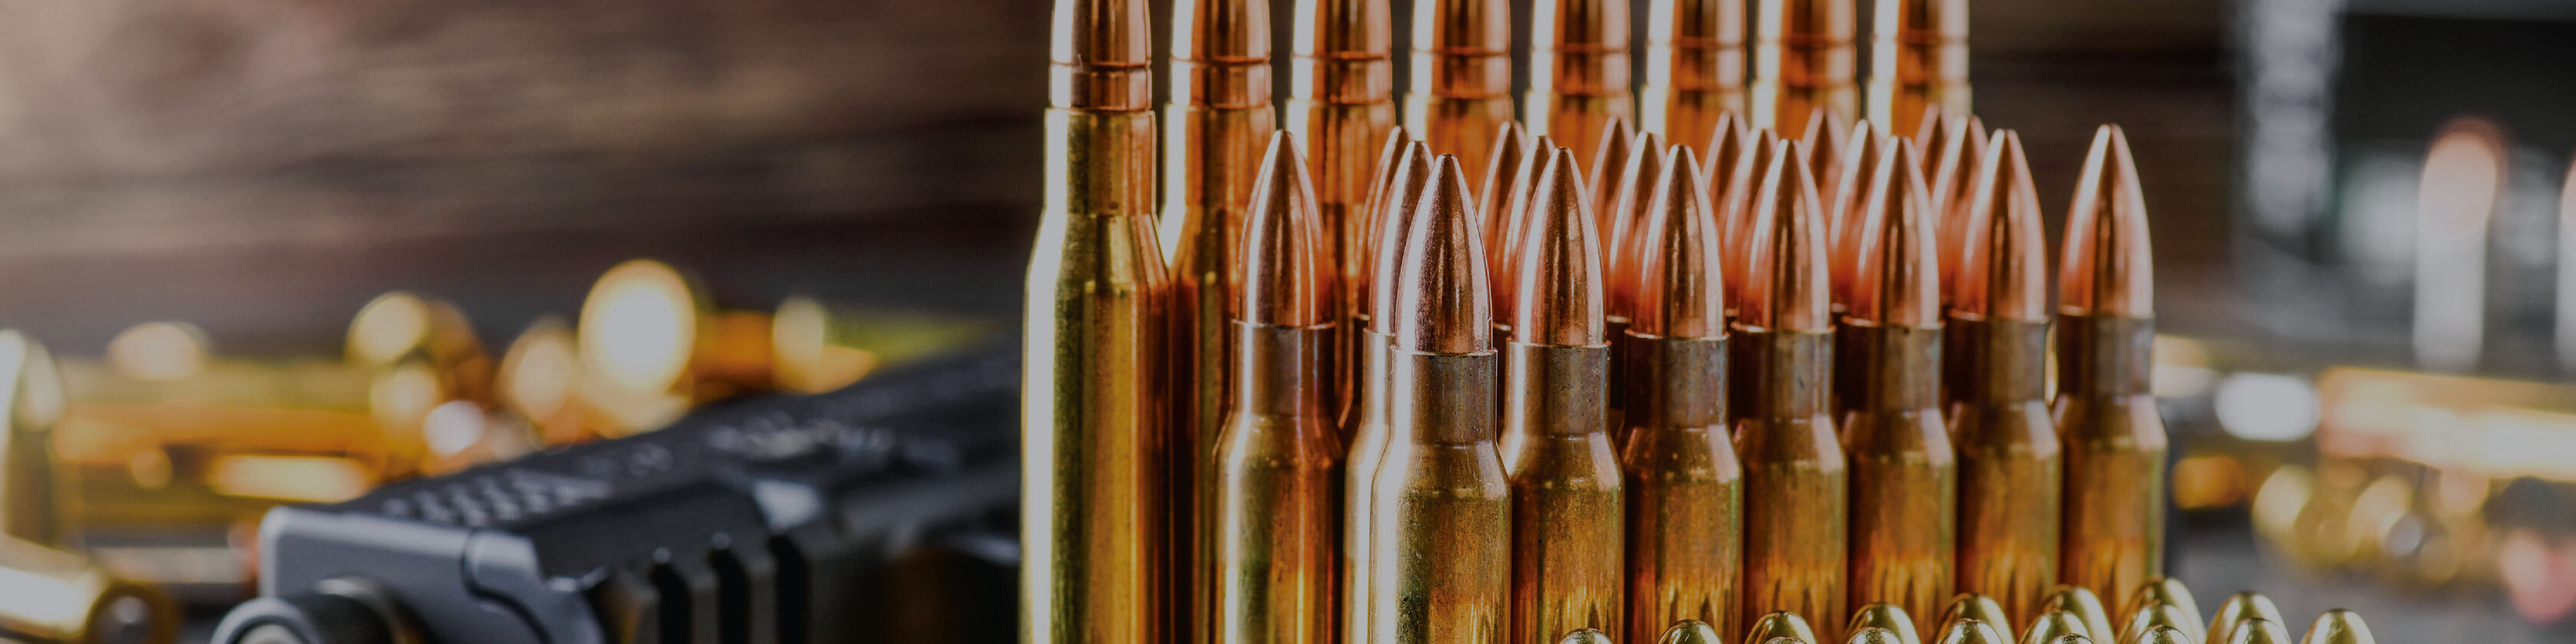 Find the right ammunition for your gun